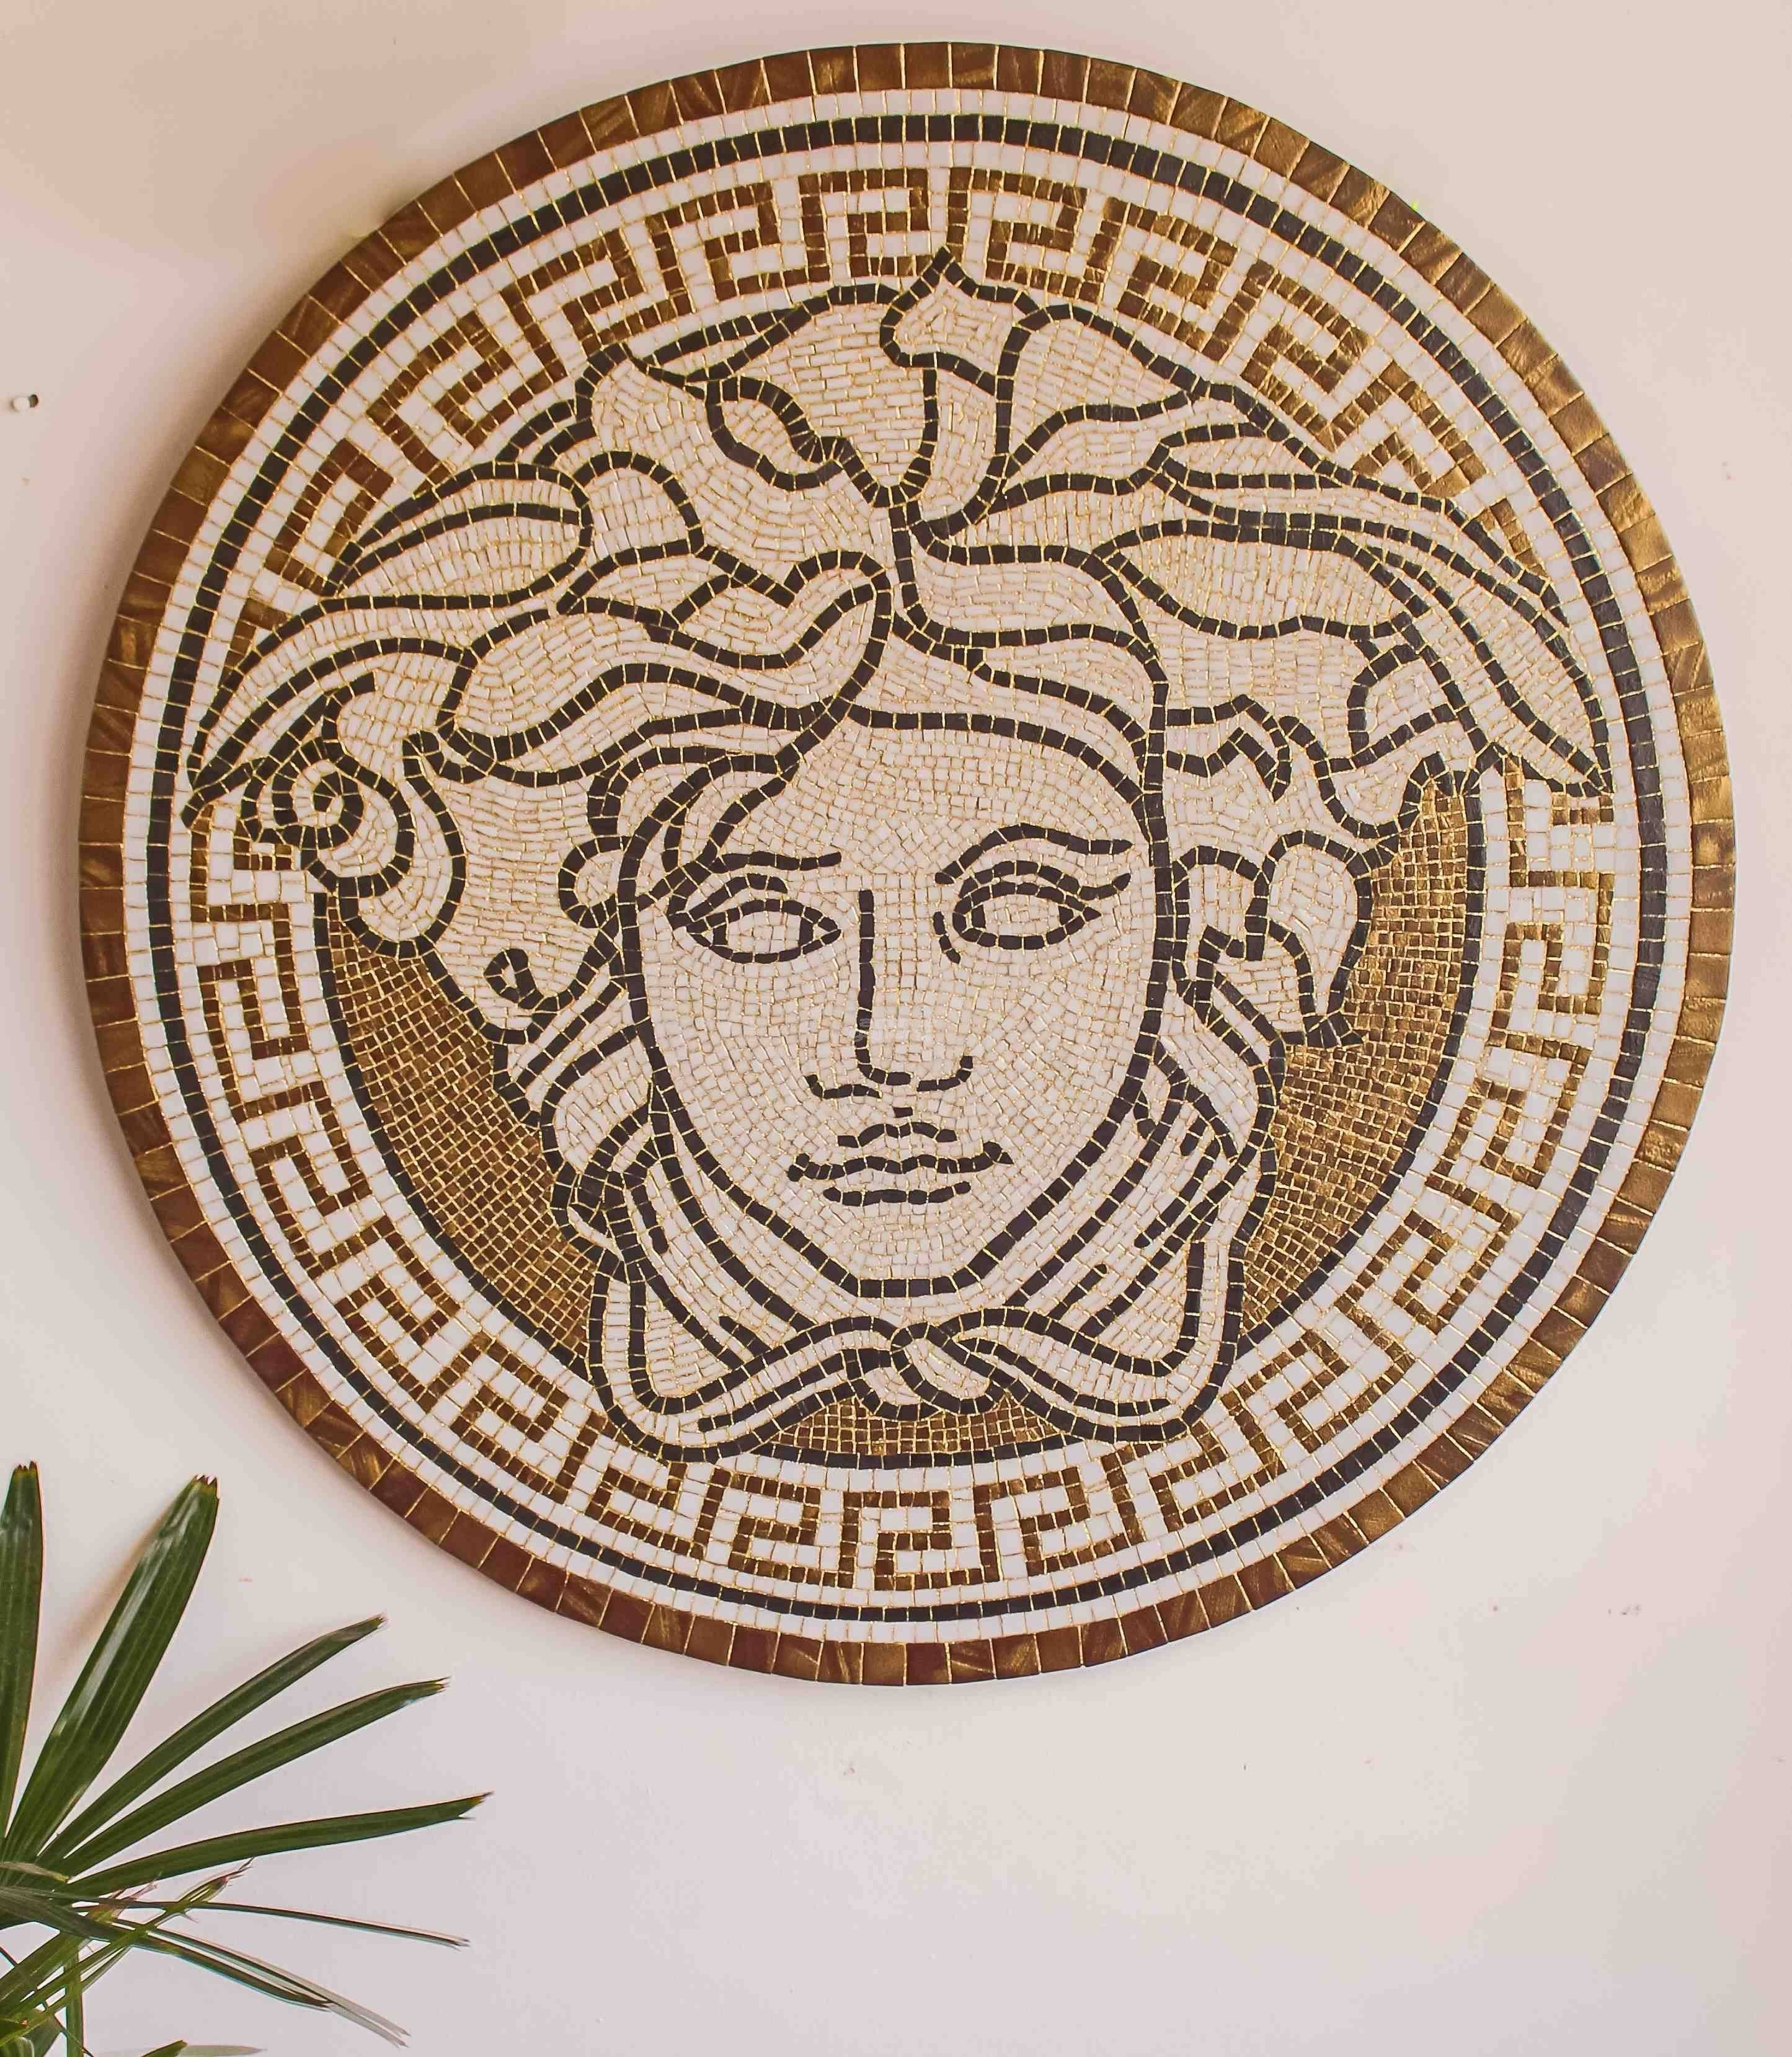 Mosaic Versace Face In Current Versace Wall Art (View 3 of 20)